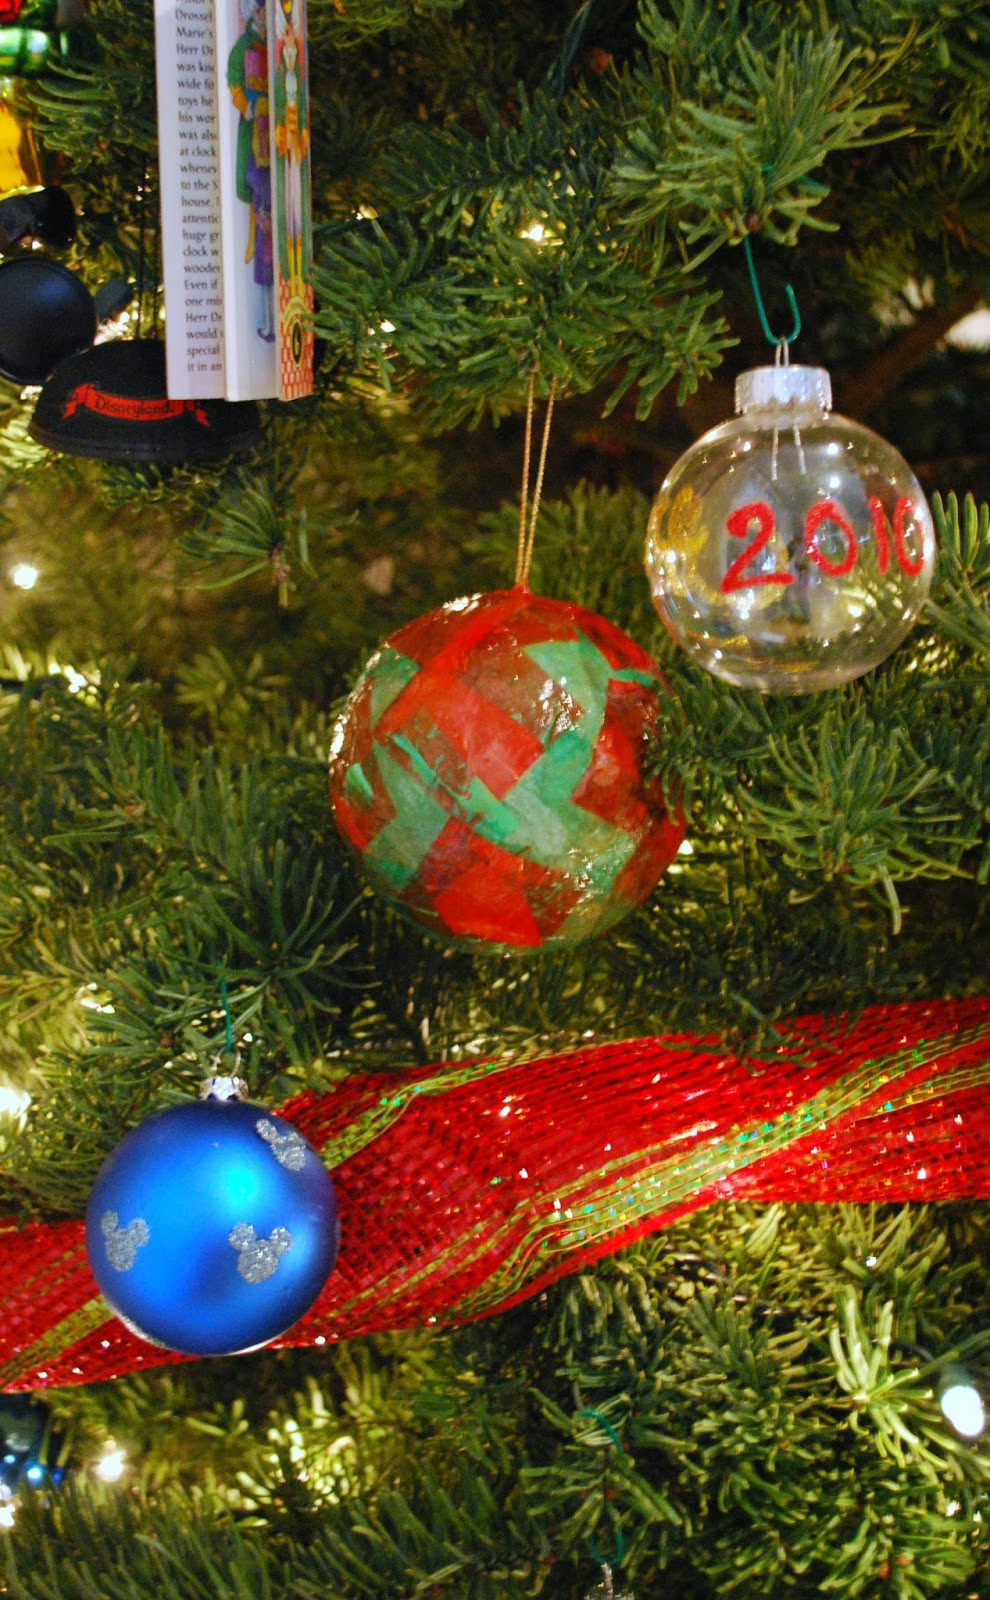 Christmas ornaments Luxury Homemade Christmas ornaments with Tissue Paper Mess for Less Of Incredible 48 Images Christmas ornaments